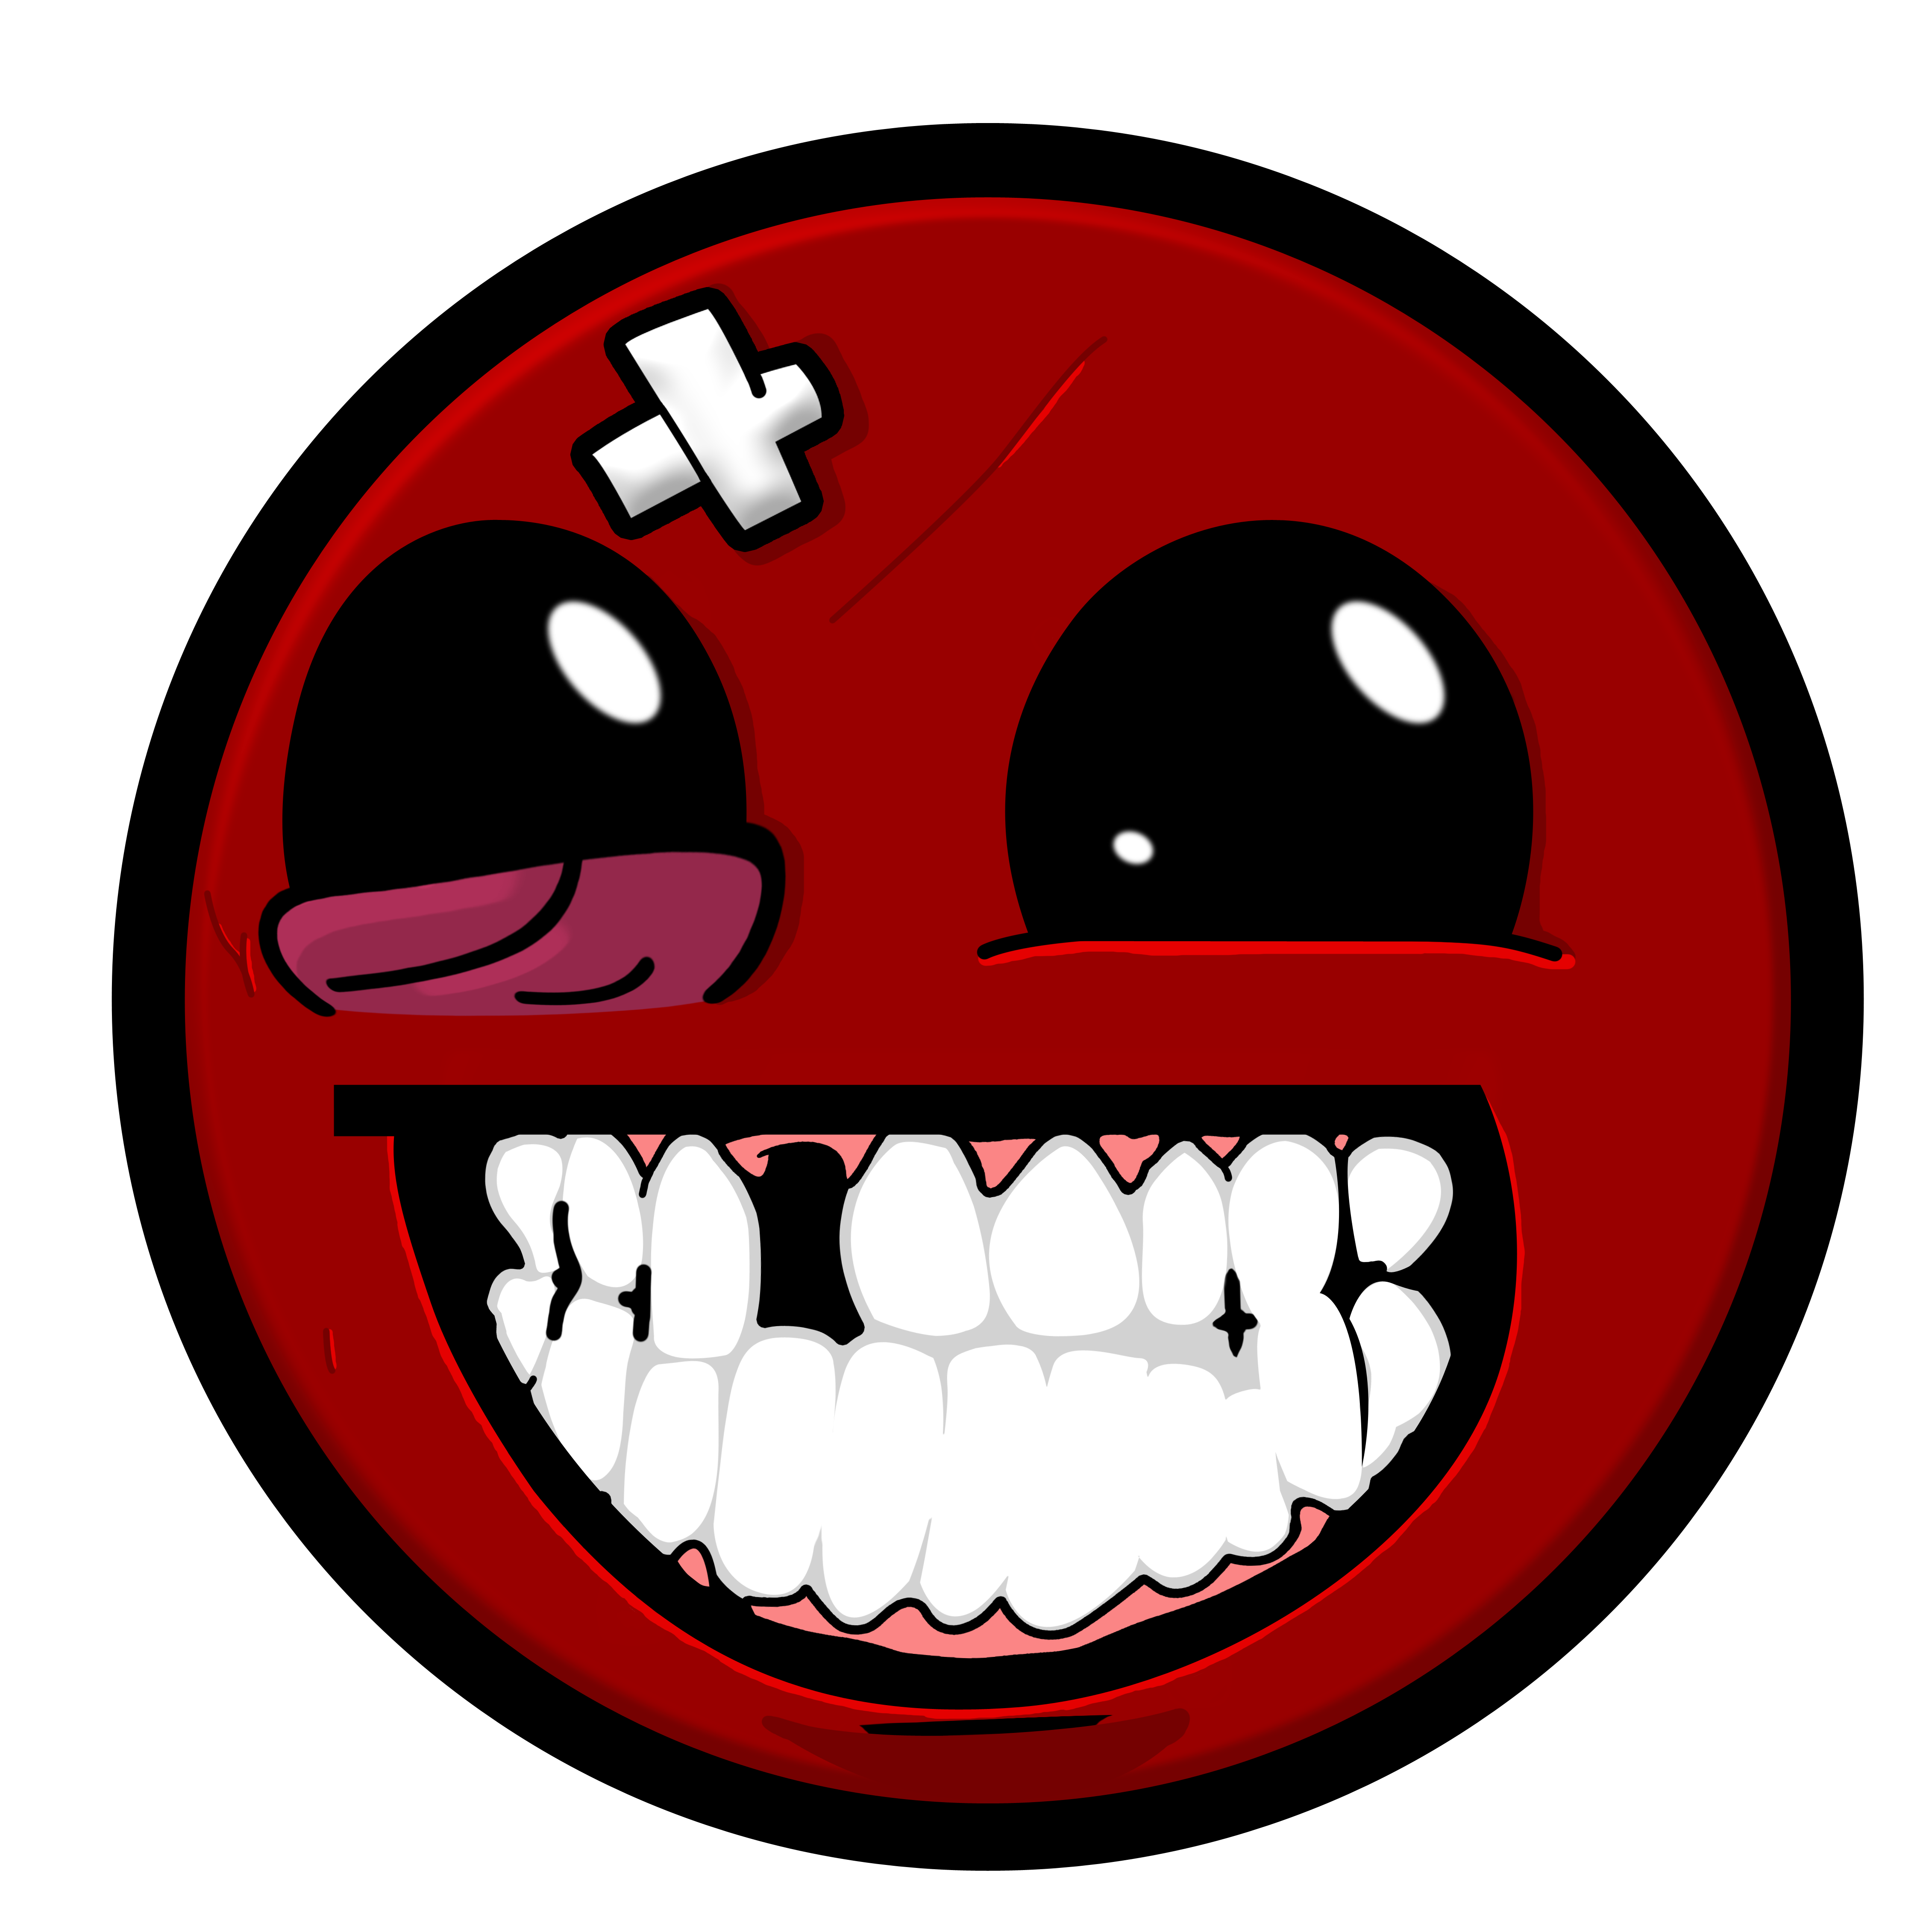 [Image - 201168] | Awesome Face / Epic Smiley | Know Your Meme